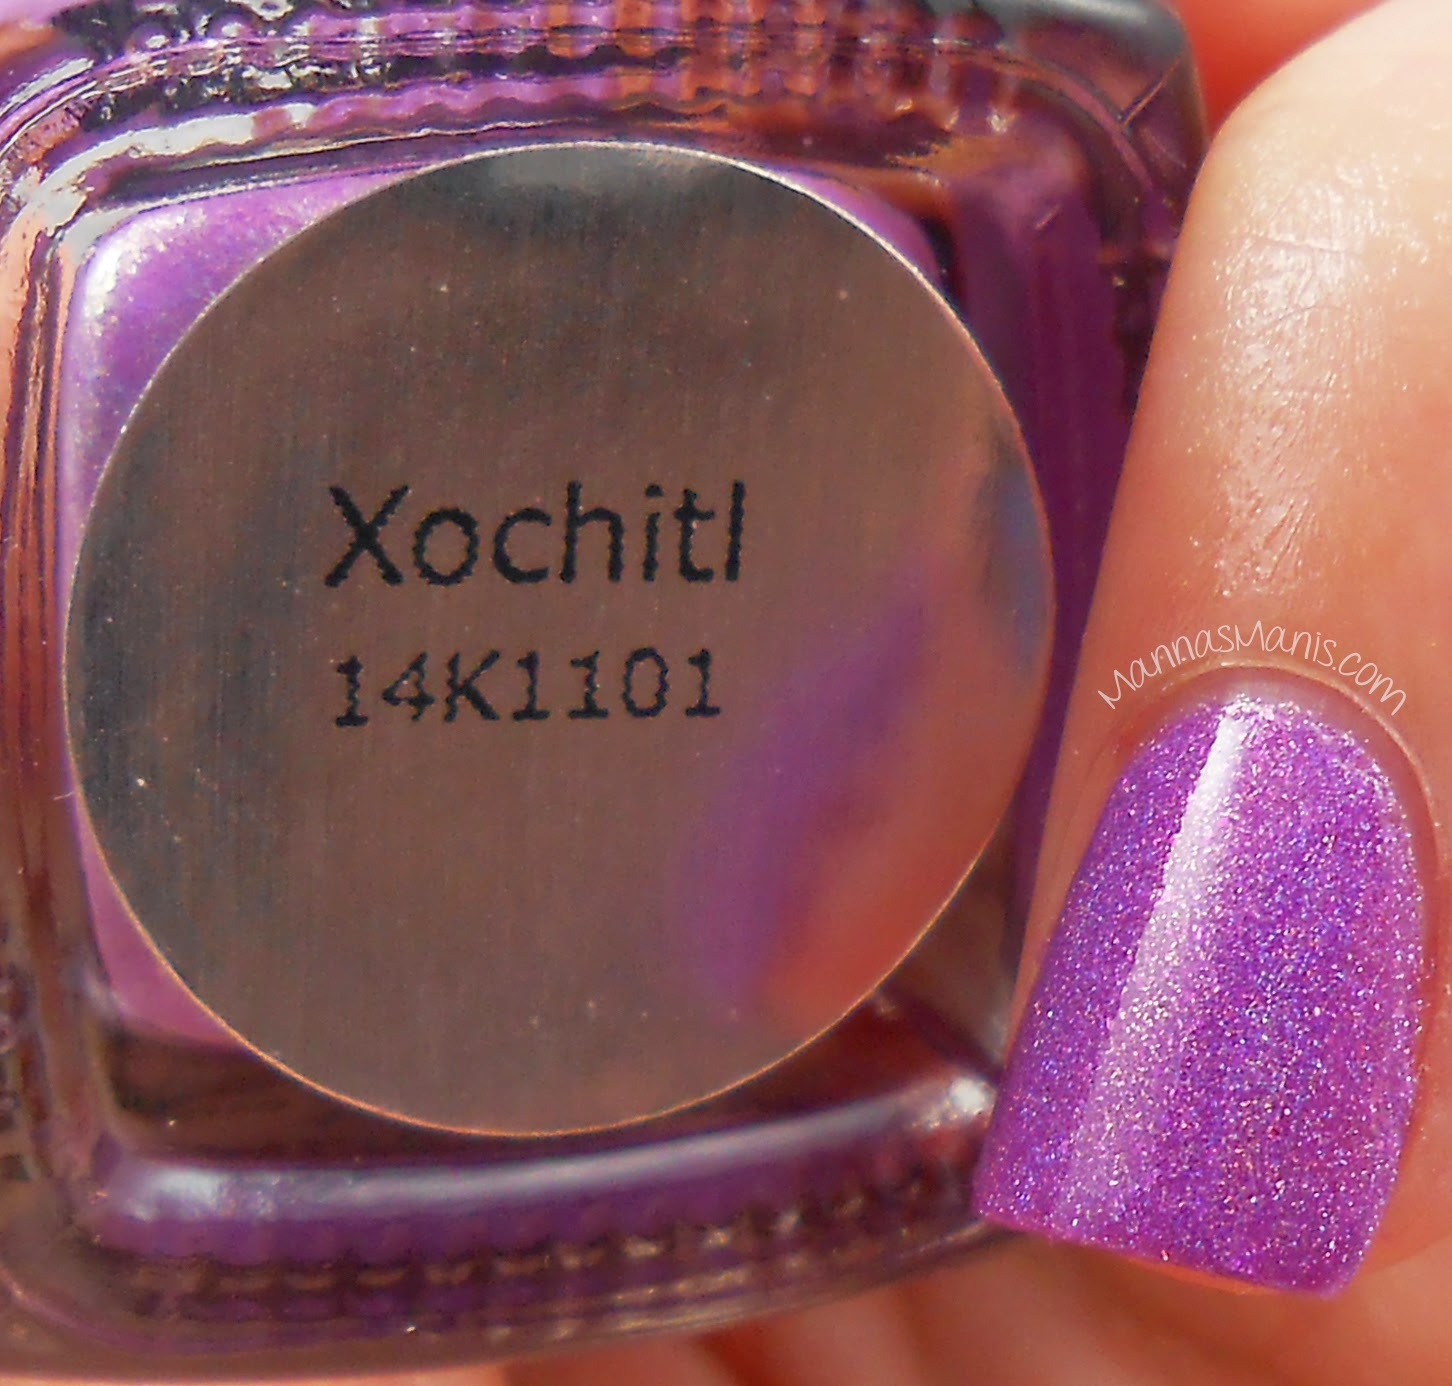 cirque colors xochitl, a purple holographic nail polish